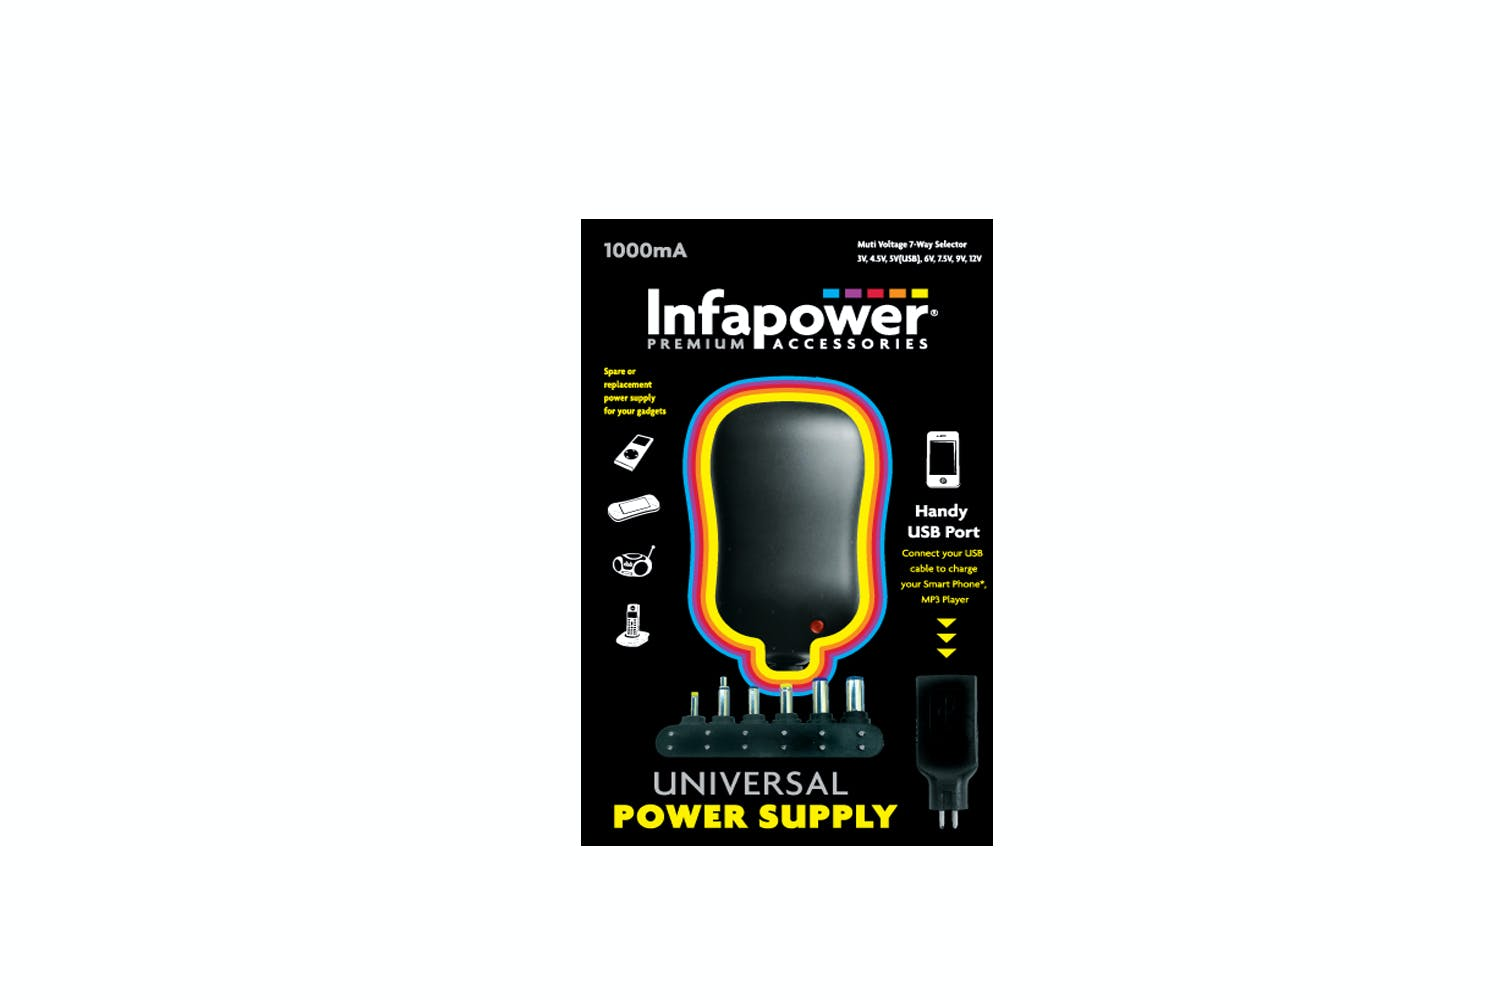 Infapower 1000mA Universal Power Bank